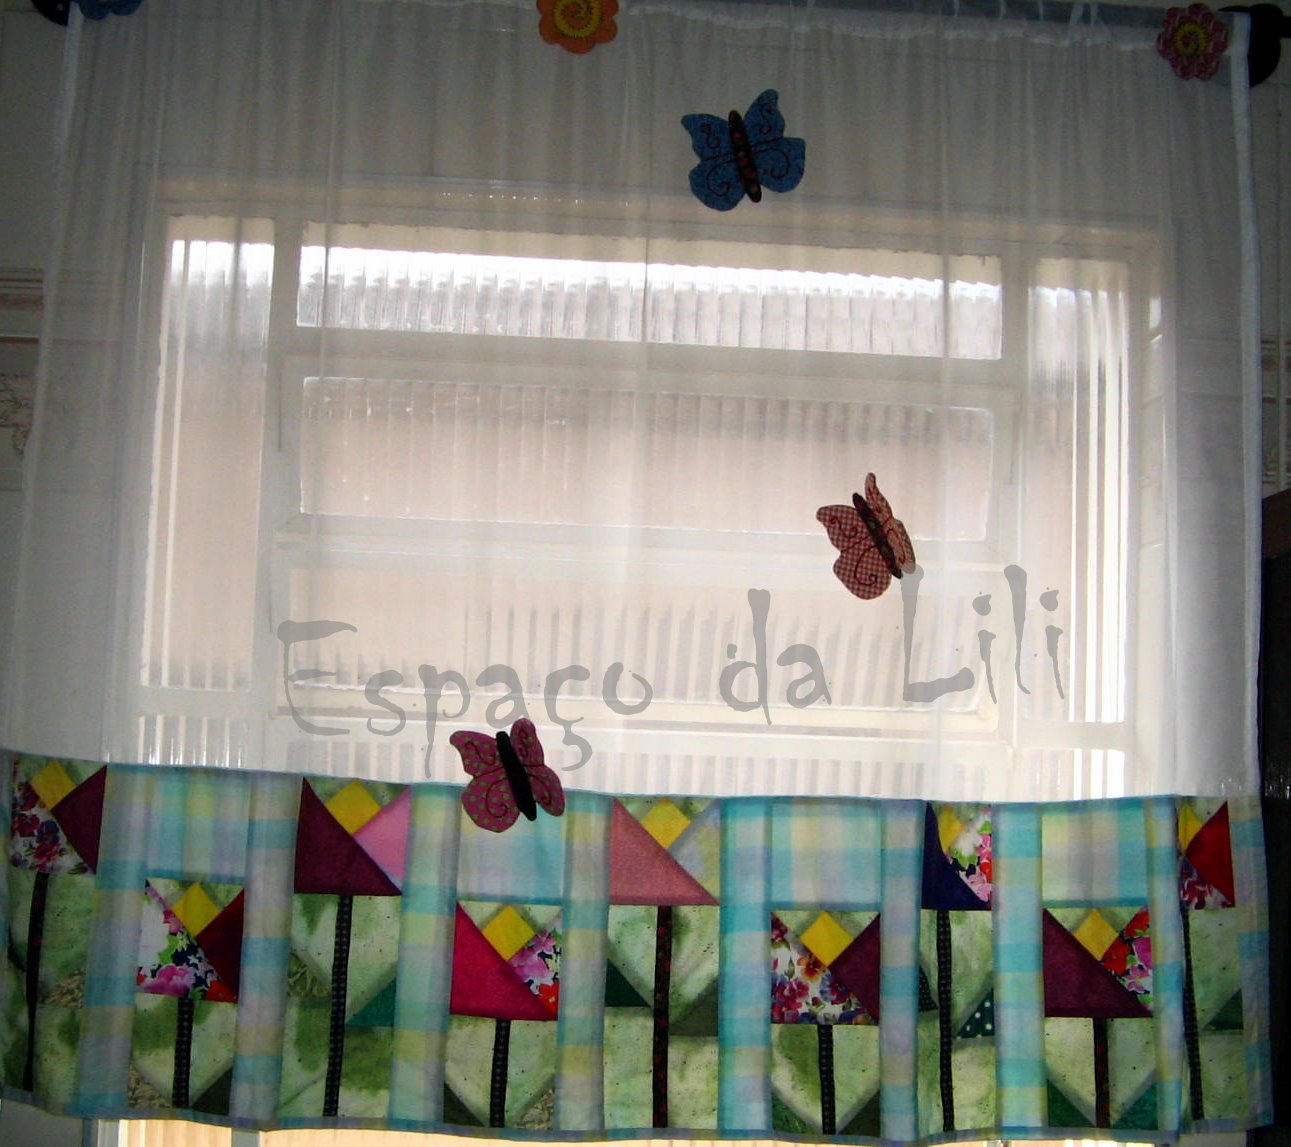 Cortinas ofabulosomundodalili 39 s blog for Cortinas para aulas